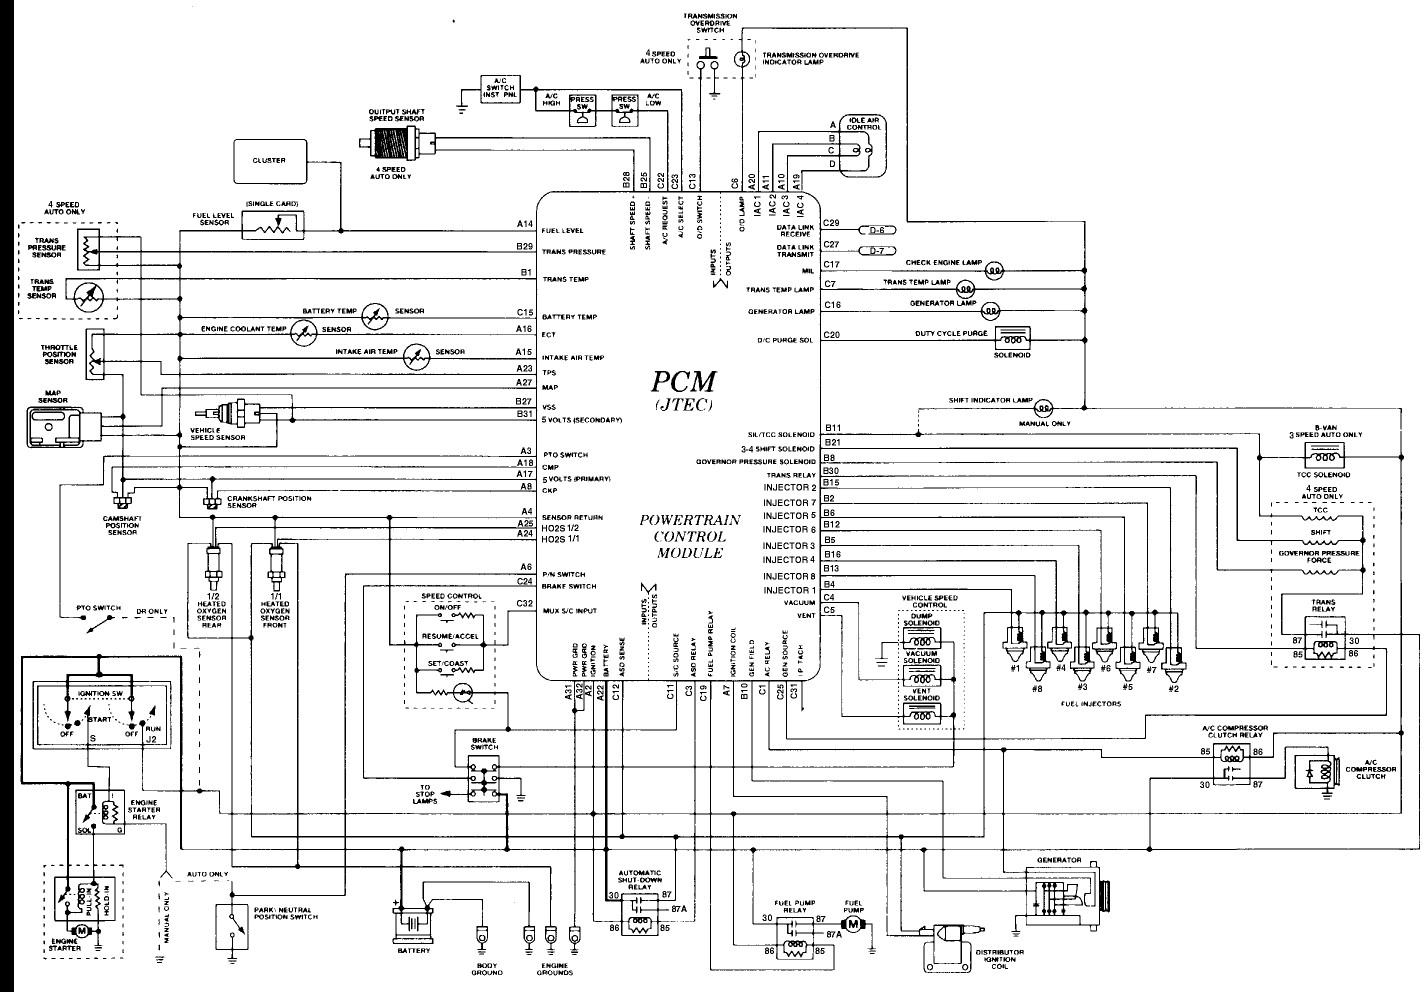 2002 radio wiring diagram 2002 dodge ram 1500 stereo wiring diagram | free wiring ... bmw x5 2002 radio wiring diagram #1